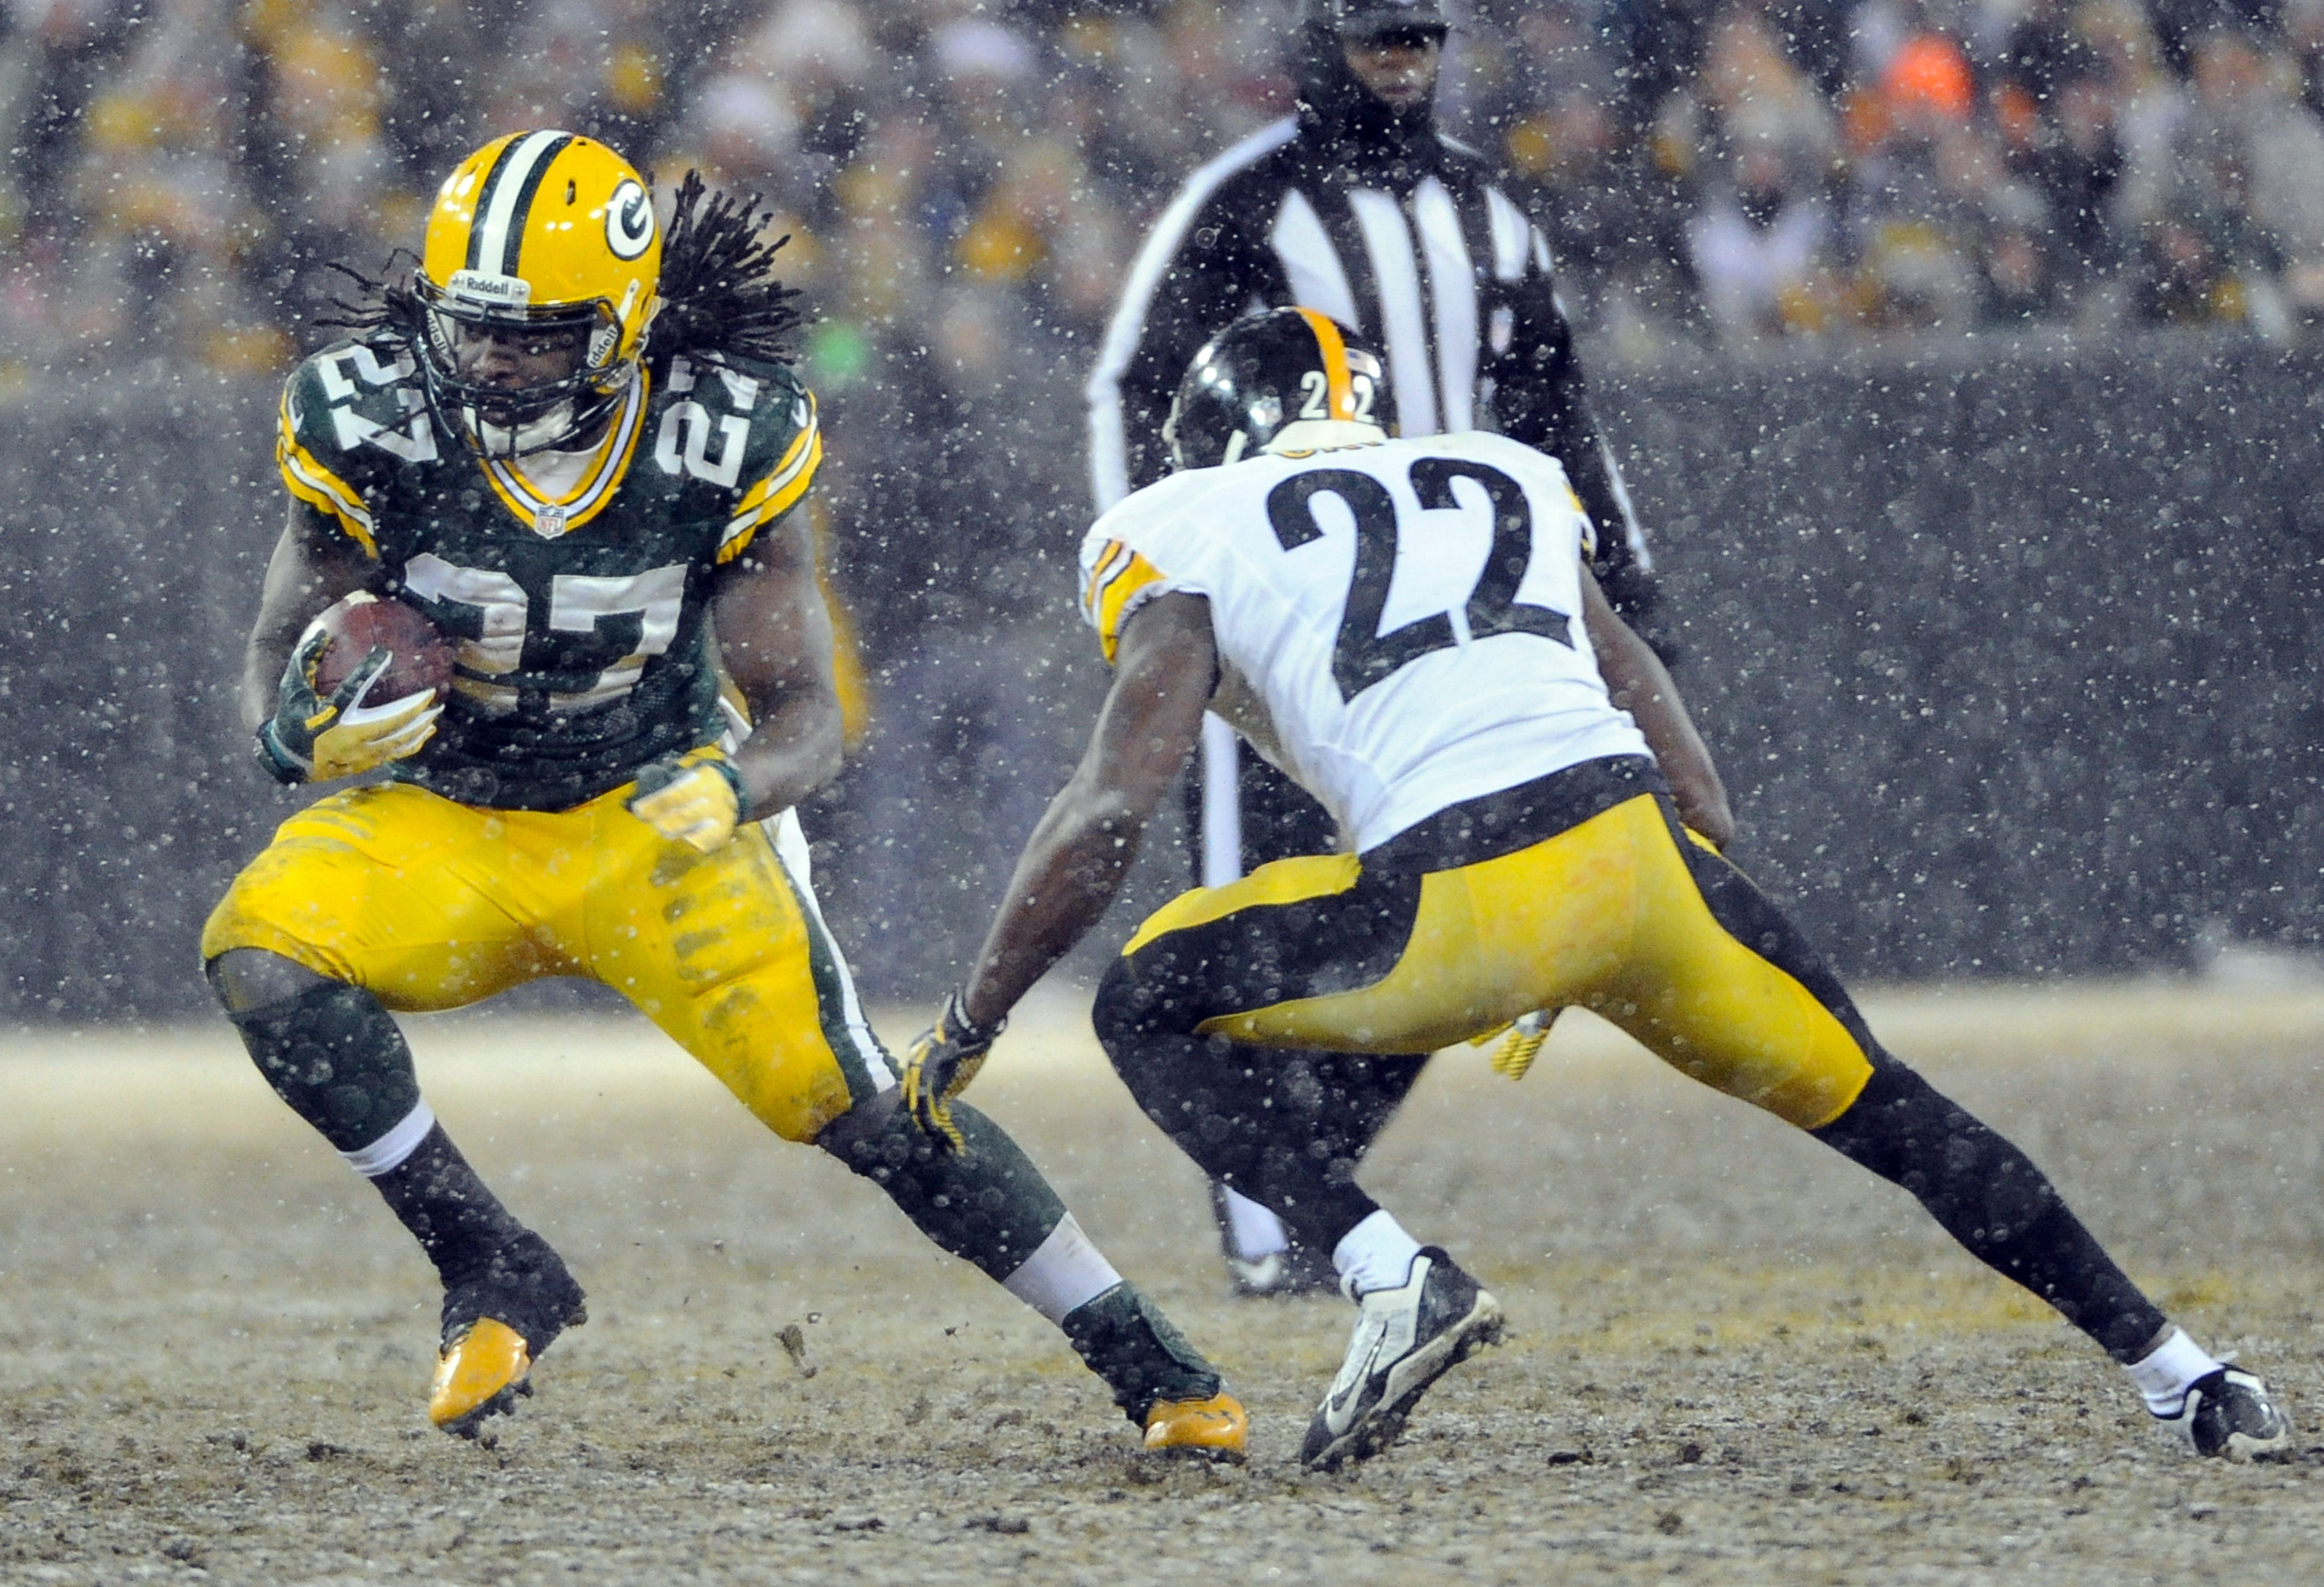 NFL Rookie of the Year race, Week 16: Eddie Lacy making a late push